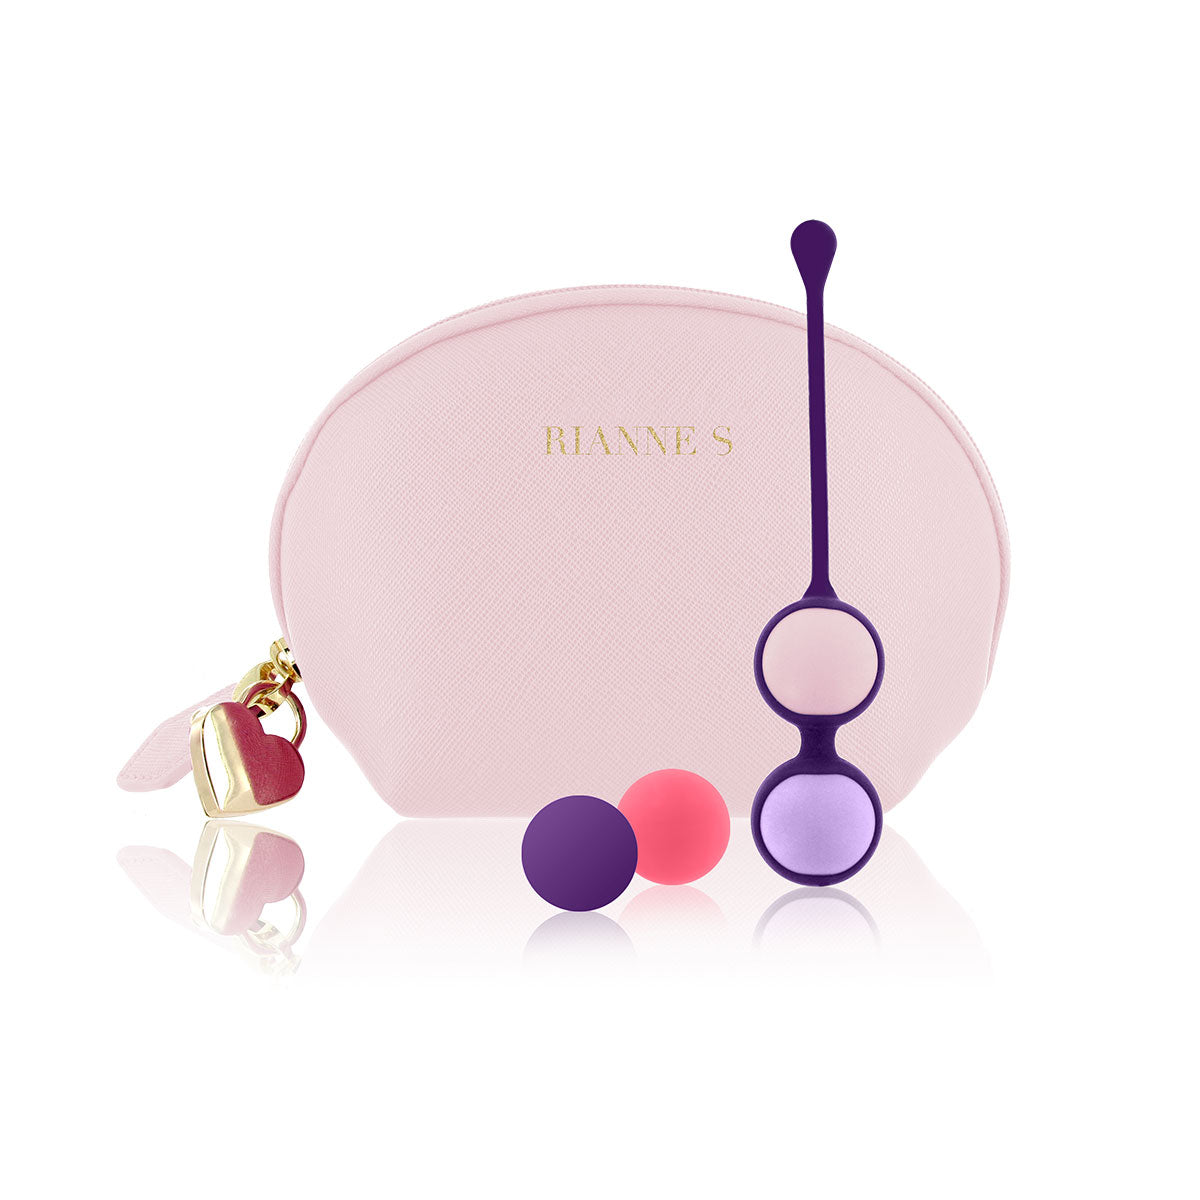 RIANNE S KEGAL PLAYBALLS - Made For Curves